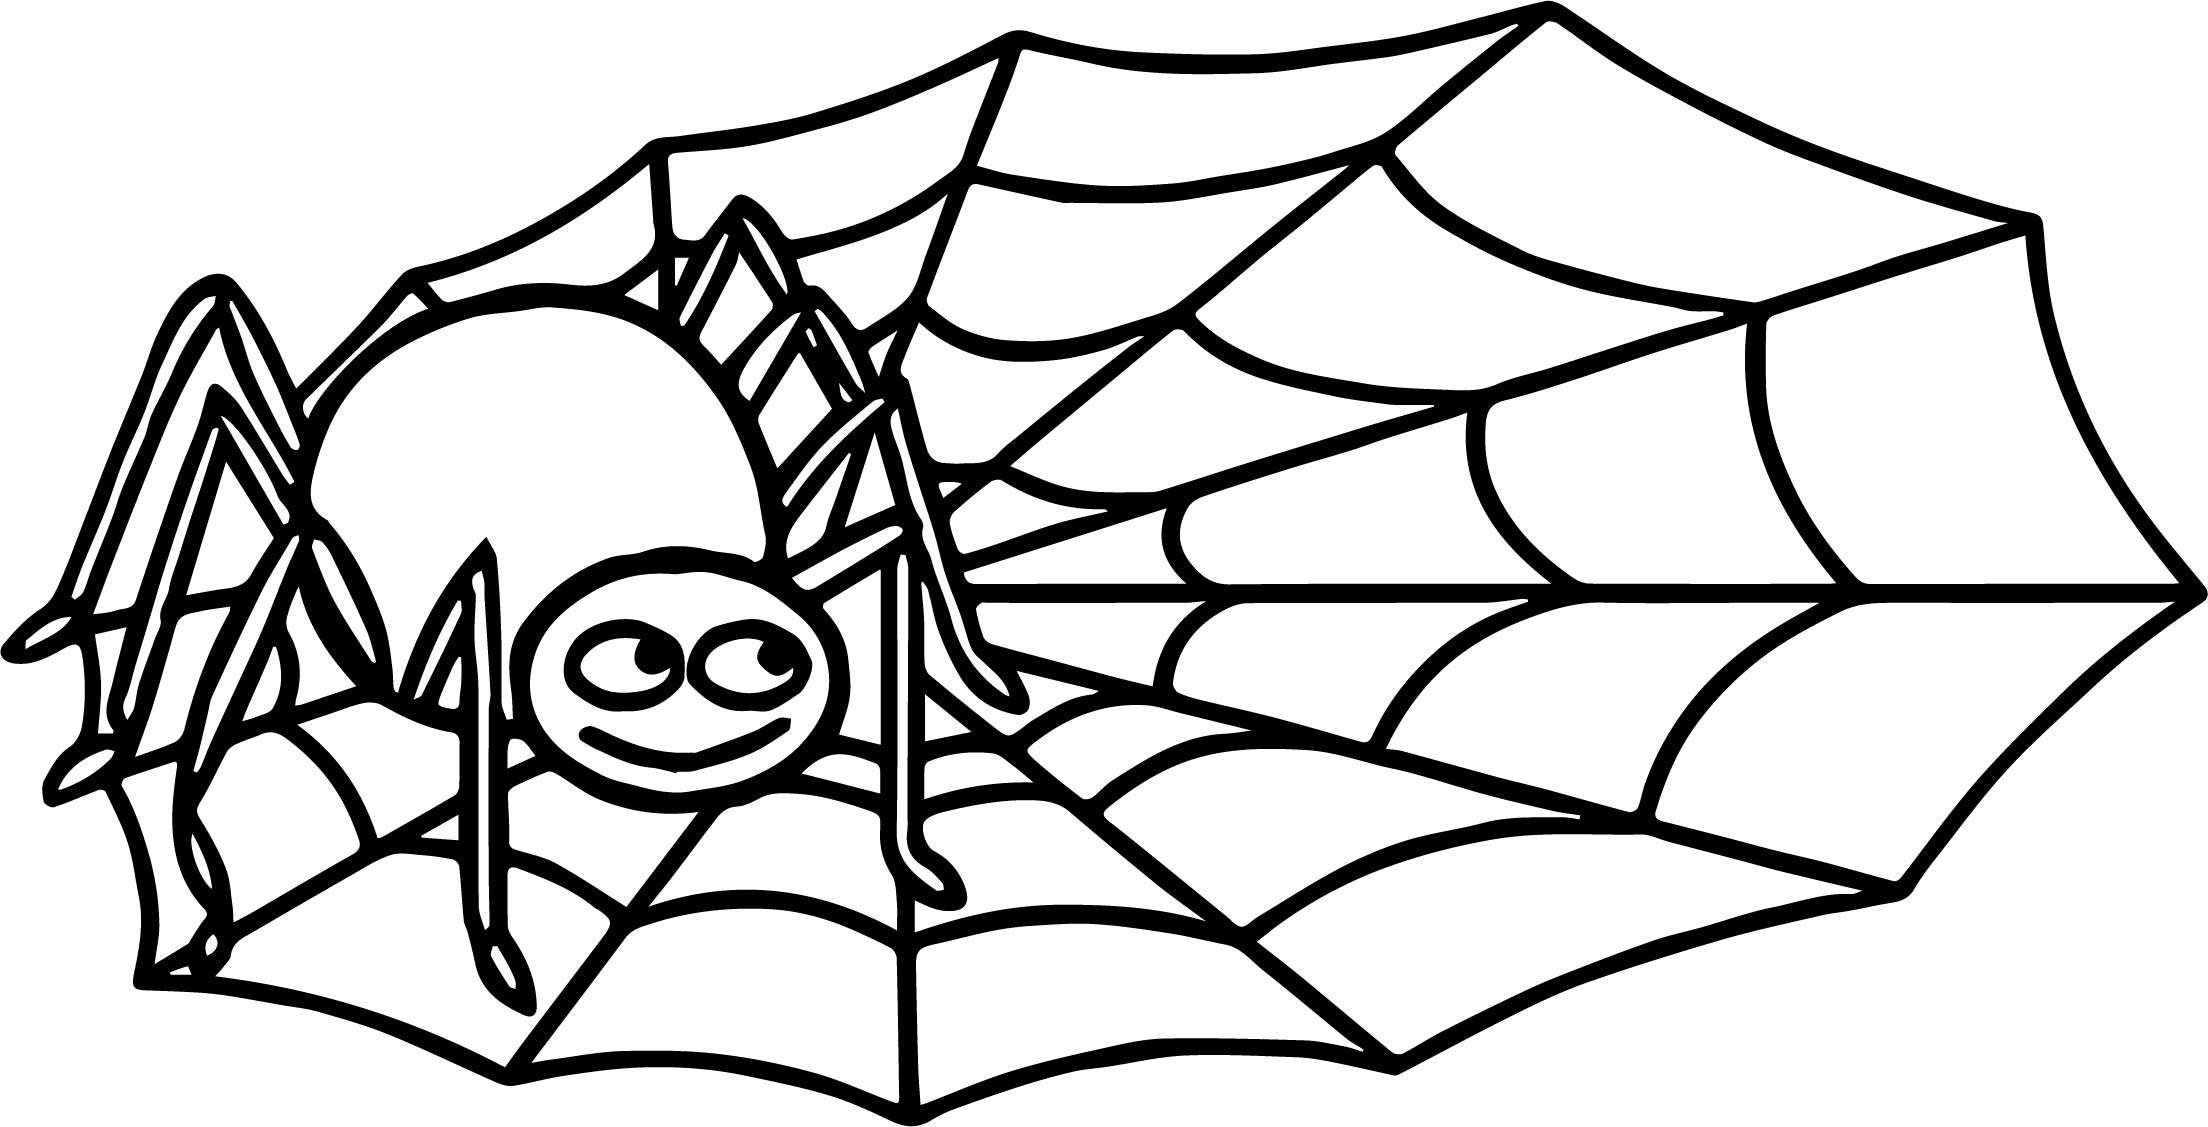 Spiders Drawing at GetDrawings.com | Free for personal use Spiders ...